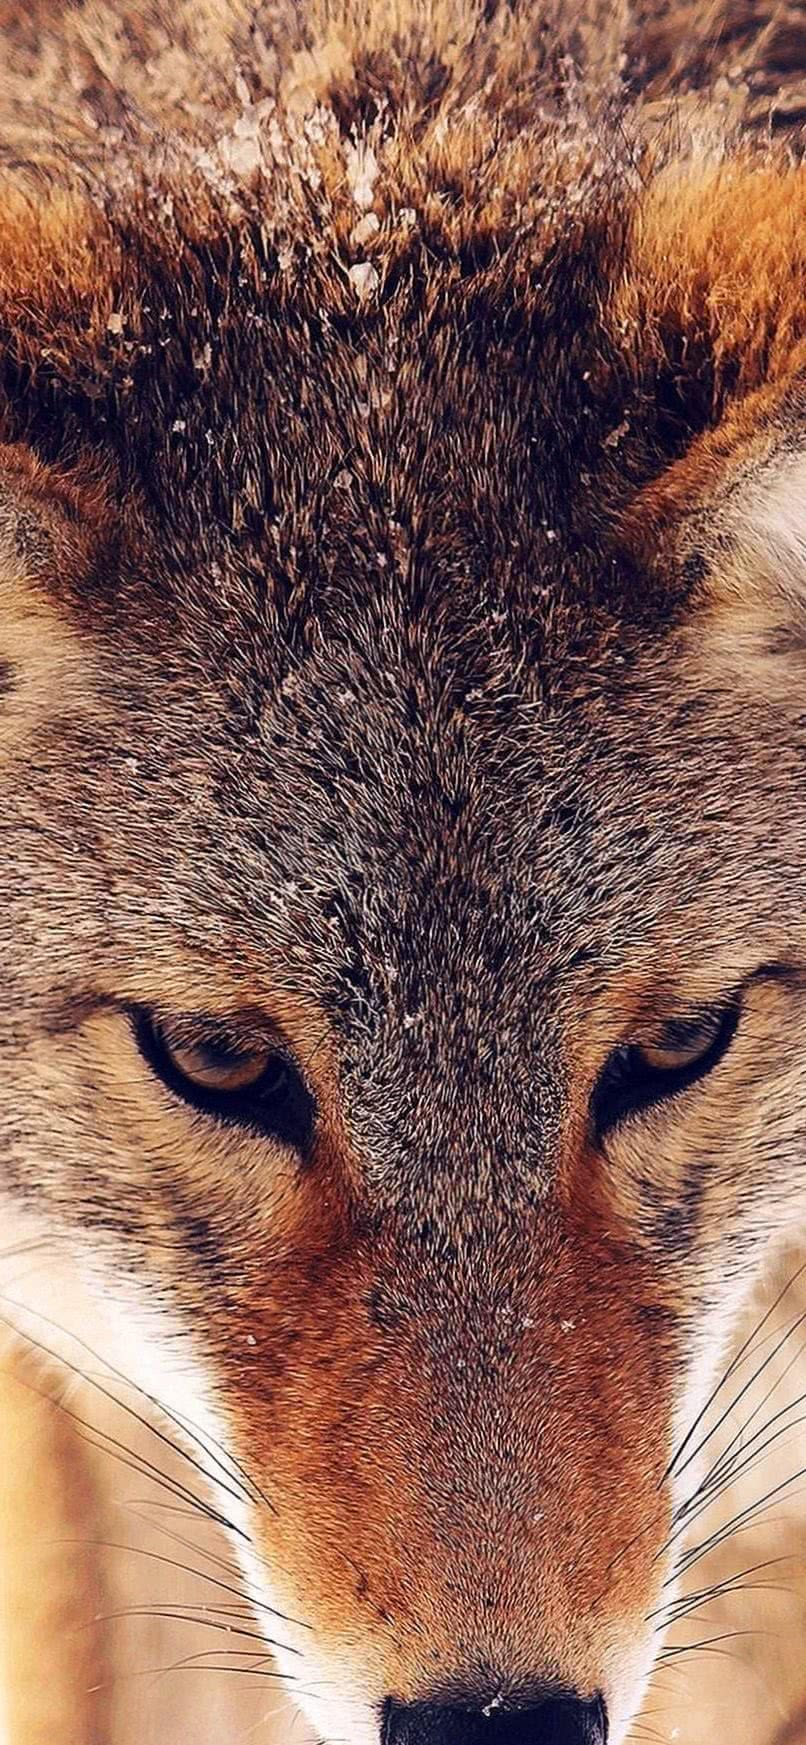 iPhone XS Wolf Wallpapers